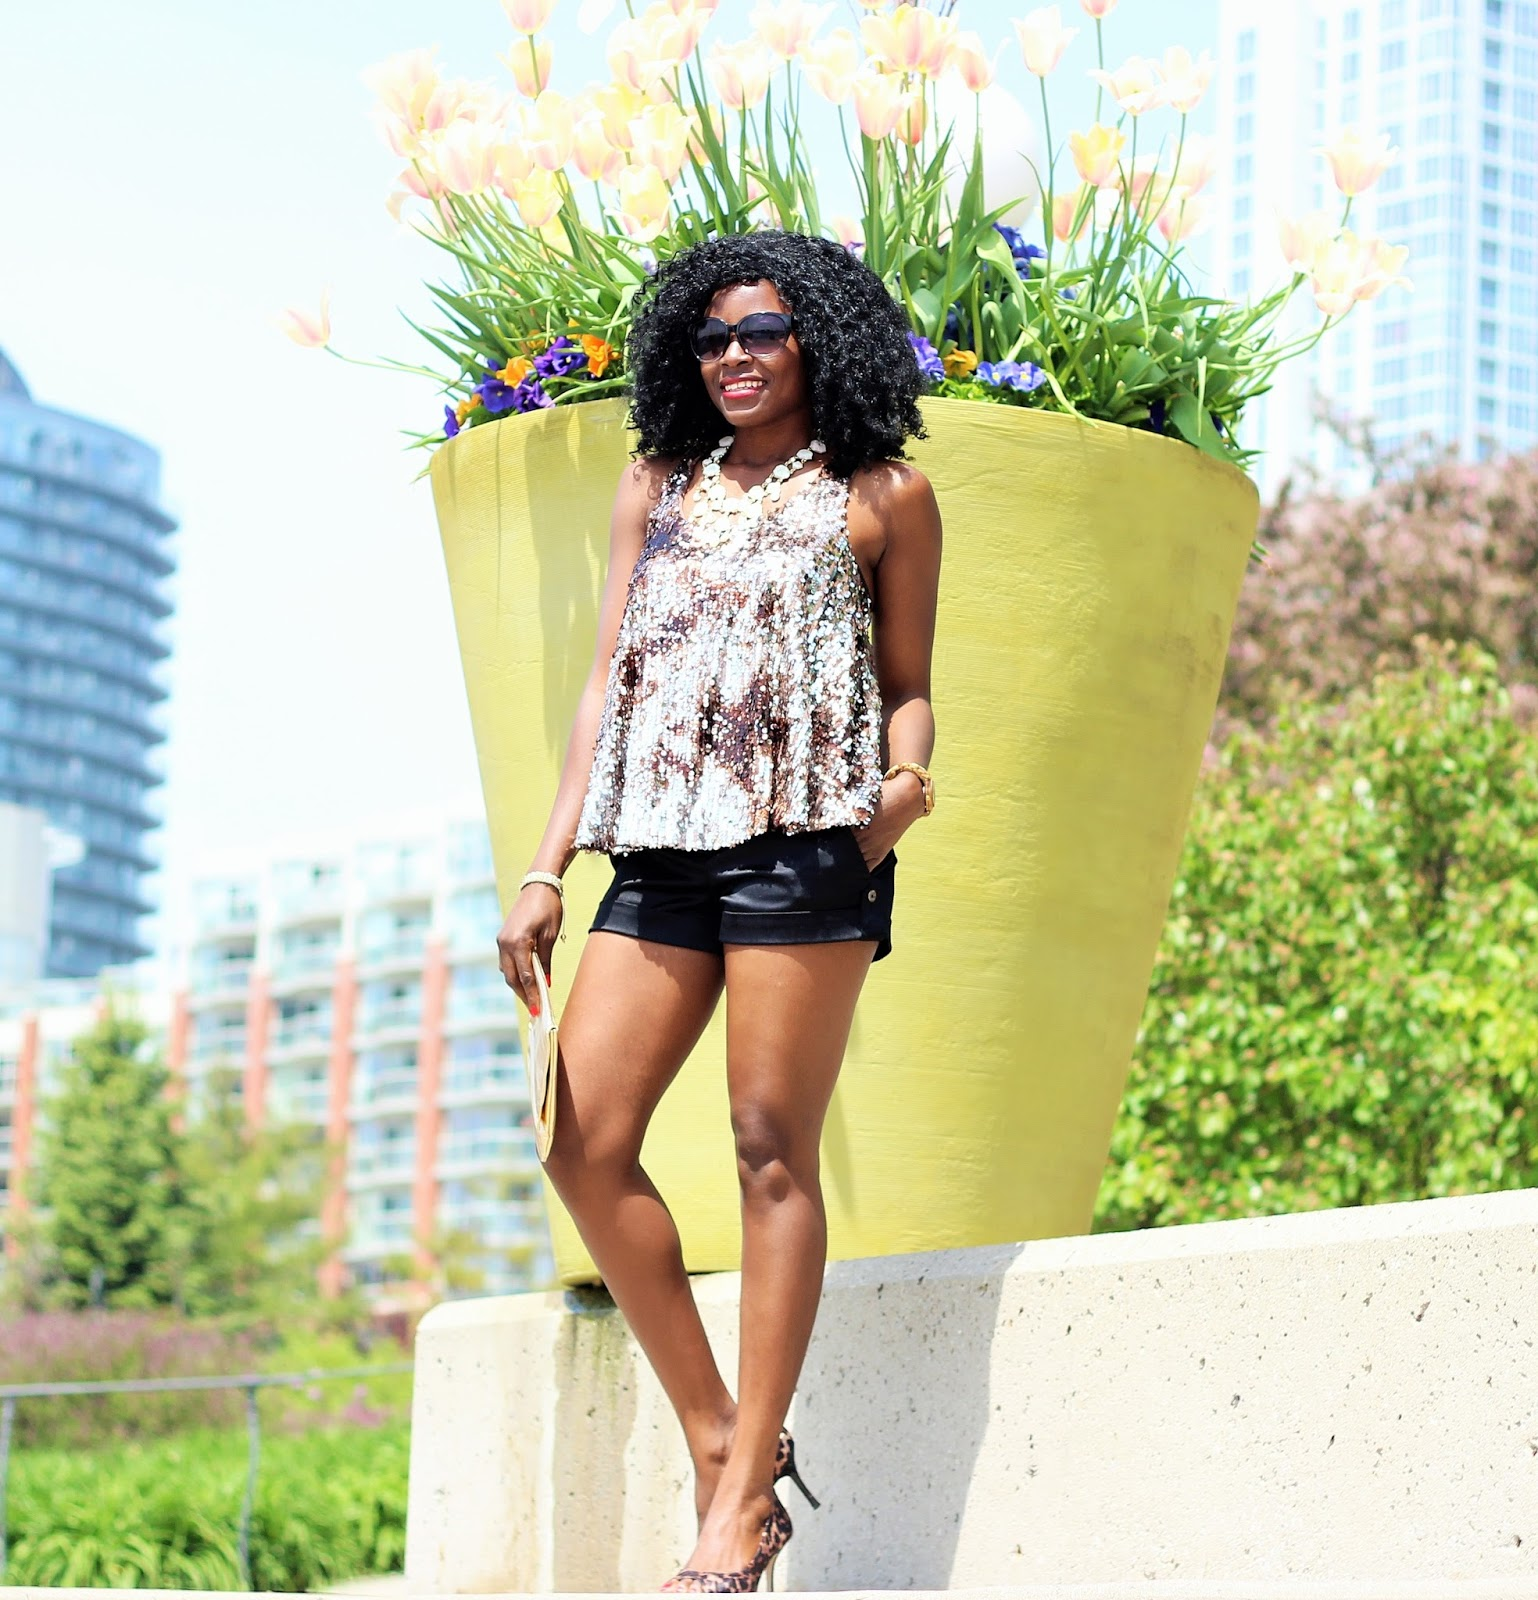 Forever 21 Sequin Top x Express Satin Shorts x Le Chateau Heels x Jord Wood Watch (Cora Series)